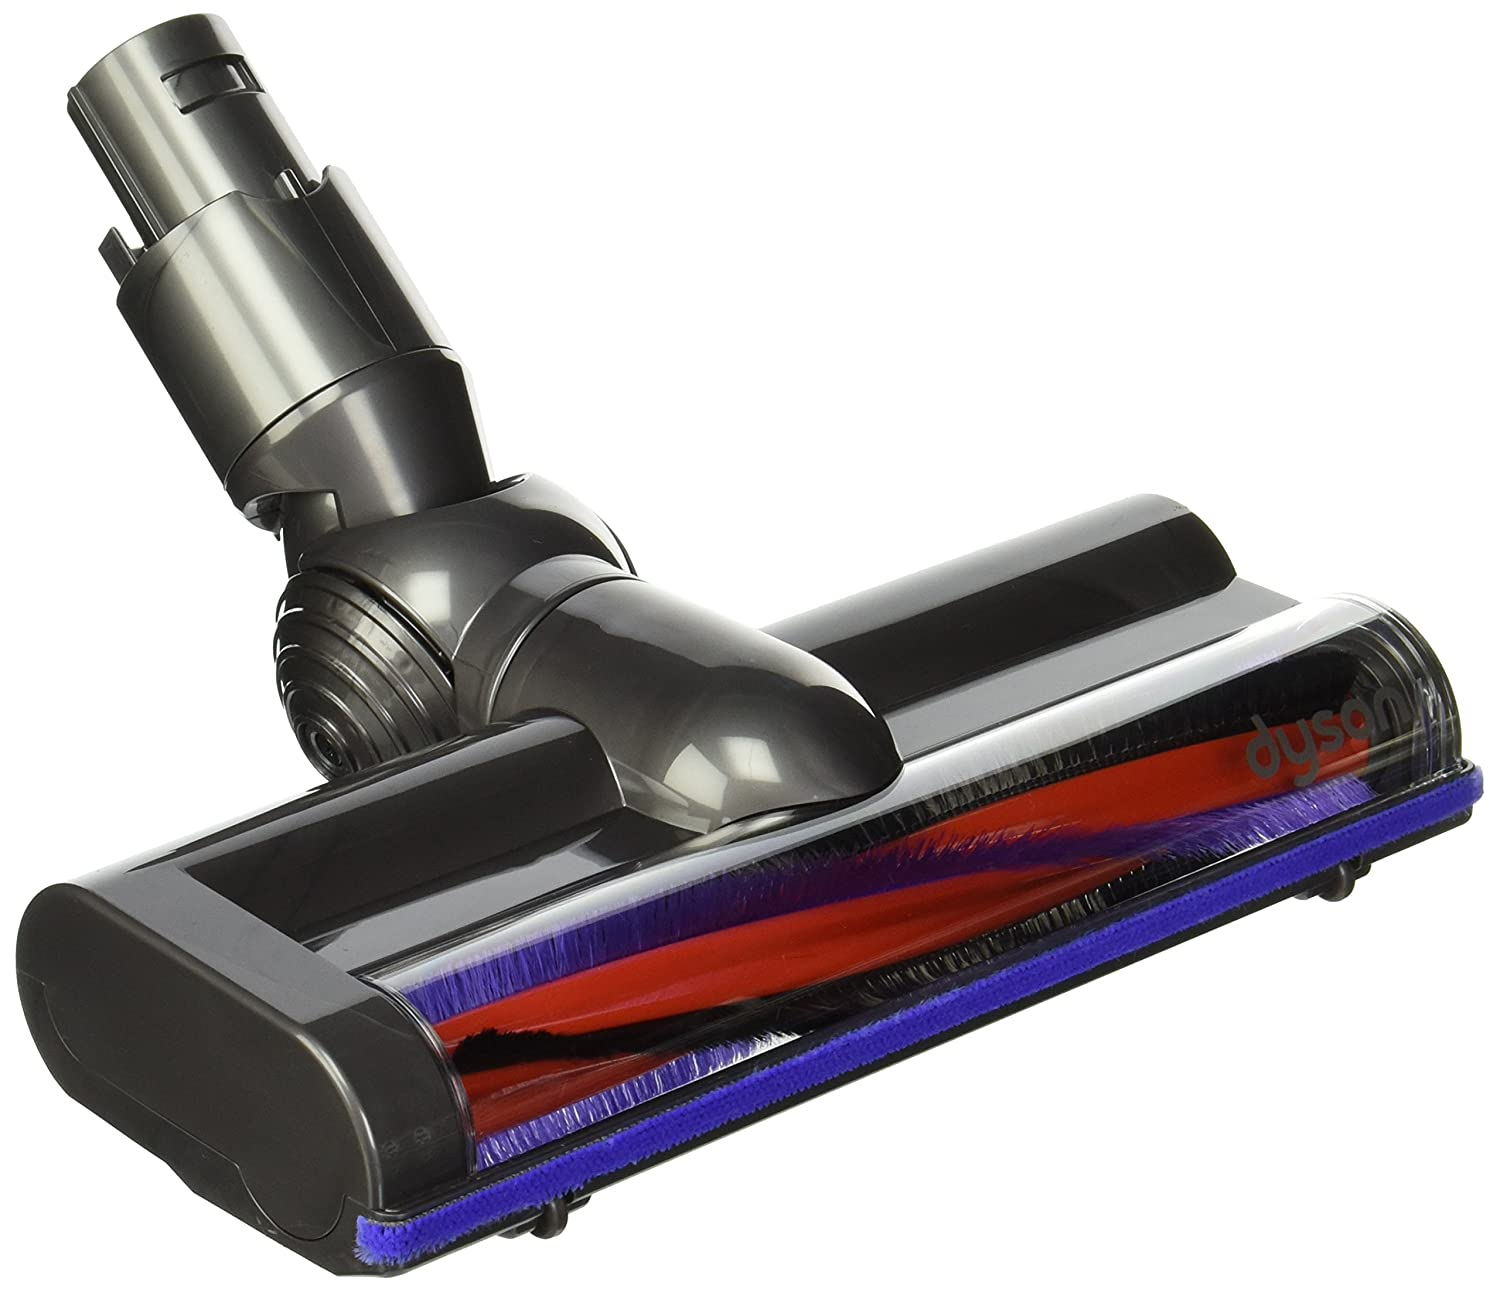 Dyson DC59 Animal Digital Slim Cordless Vacuum Cleaner Brush Tool